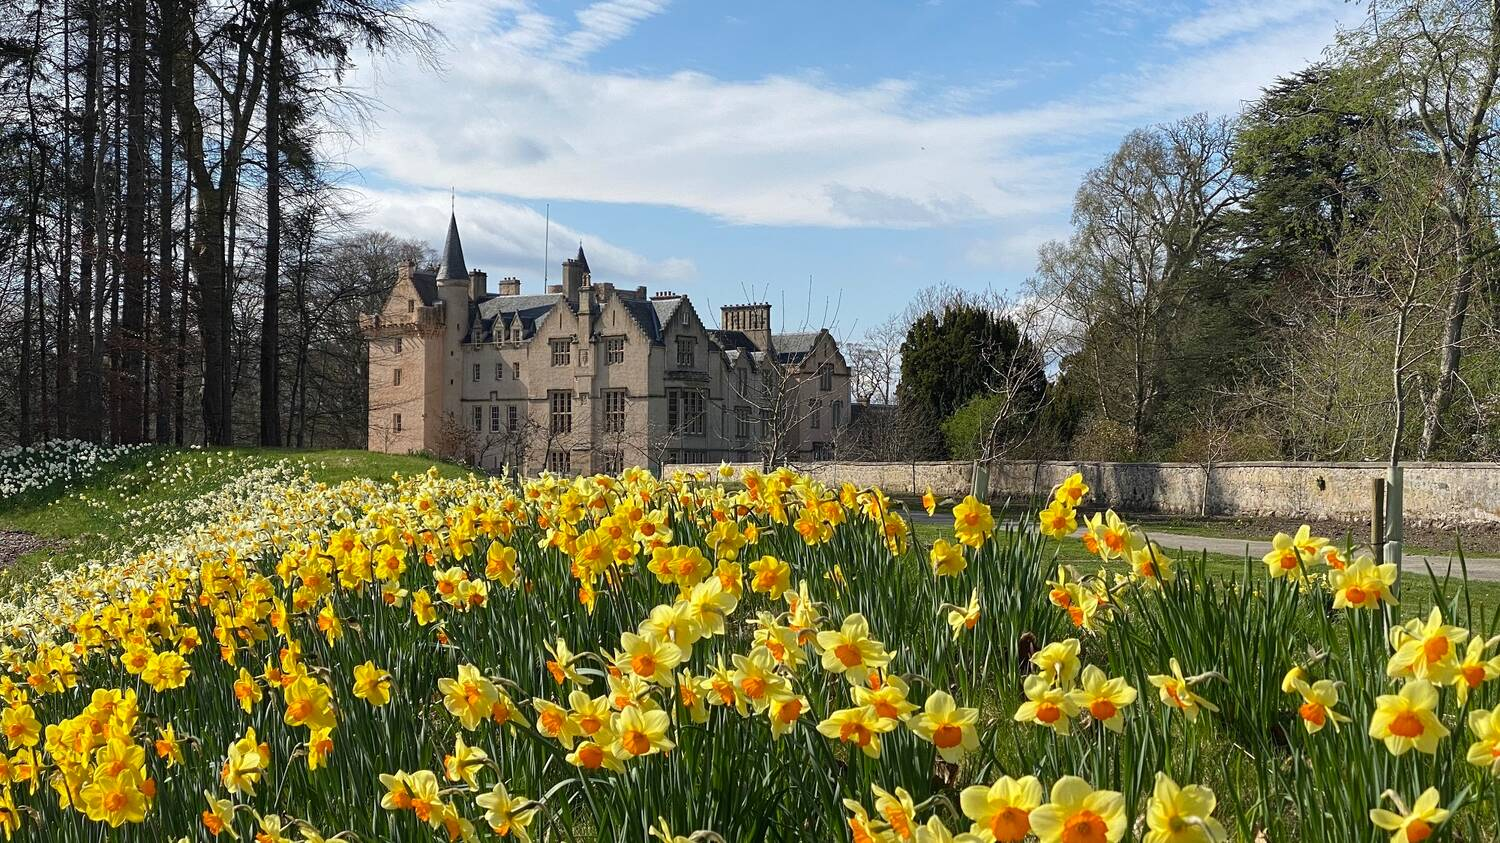 A view of Brodie Castle in the background, with a grassy bank covered in daffodils in the foreground. A long stone wall runs beside a path that leads to the castle.